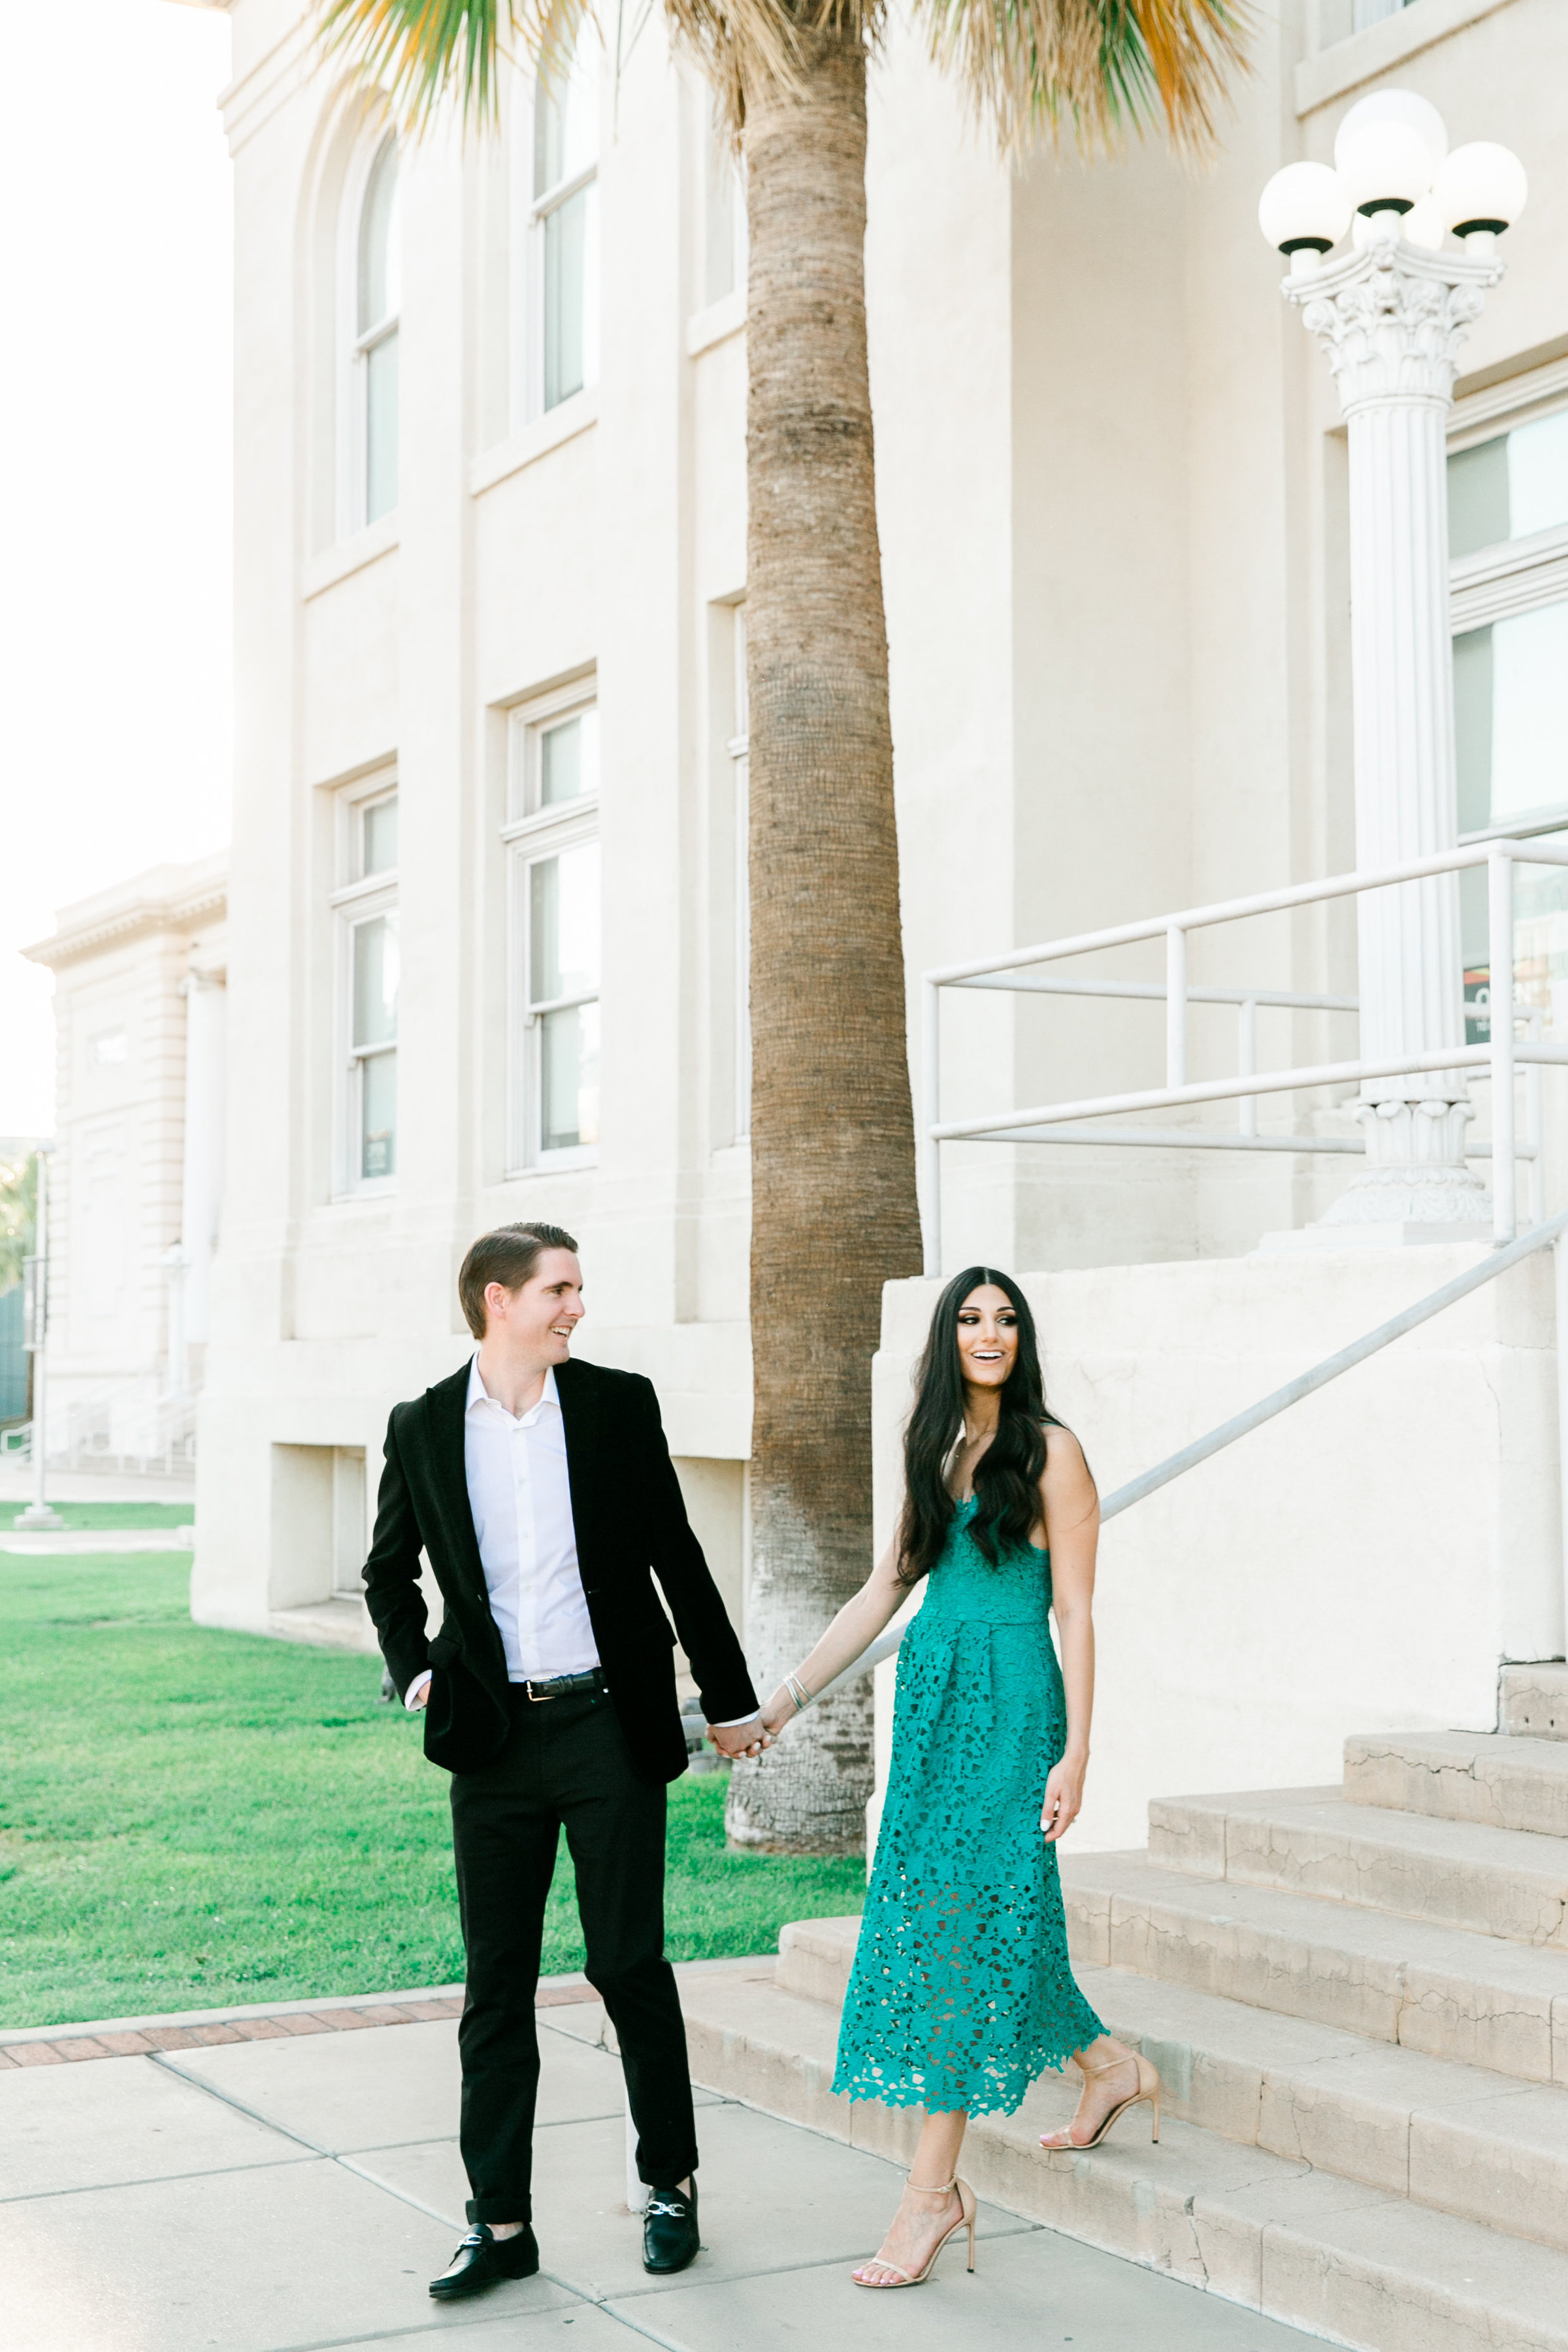 Karlie Colleen Photography - Arizona Engagement City Shoot - Kim & Tim-139